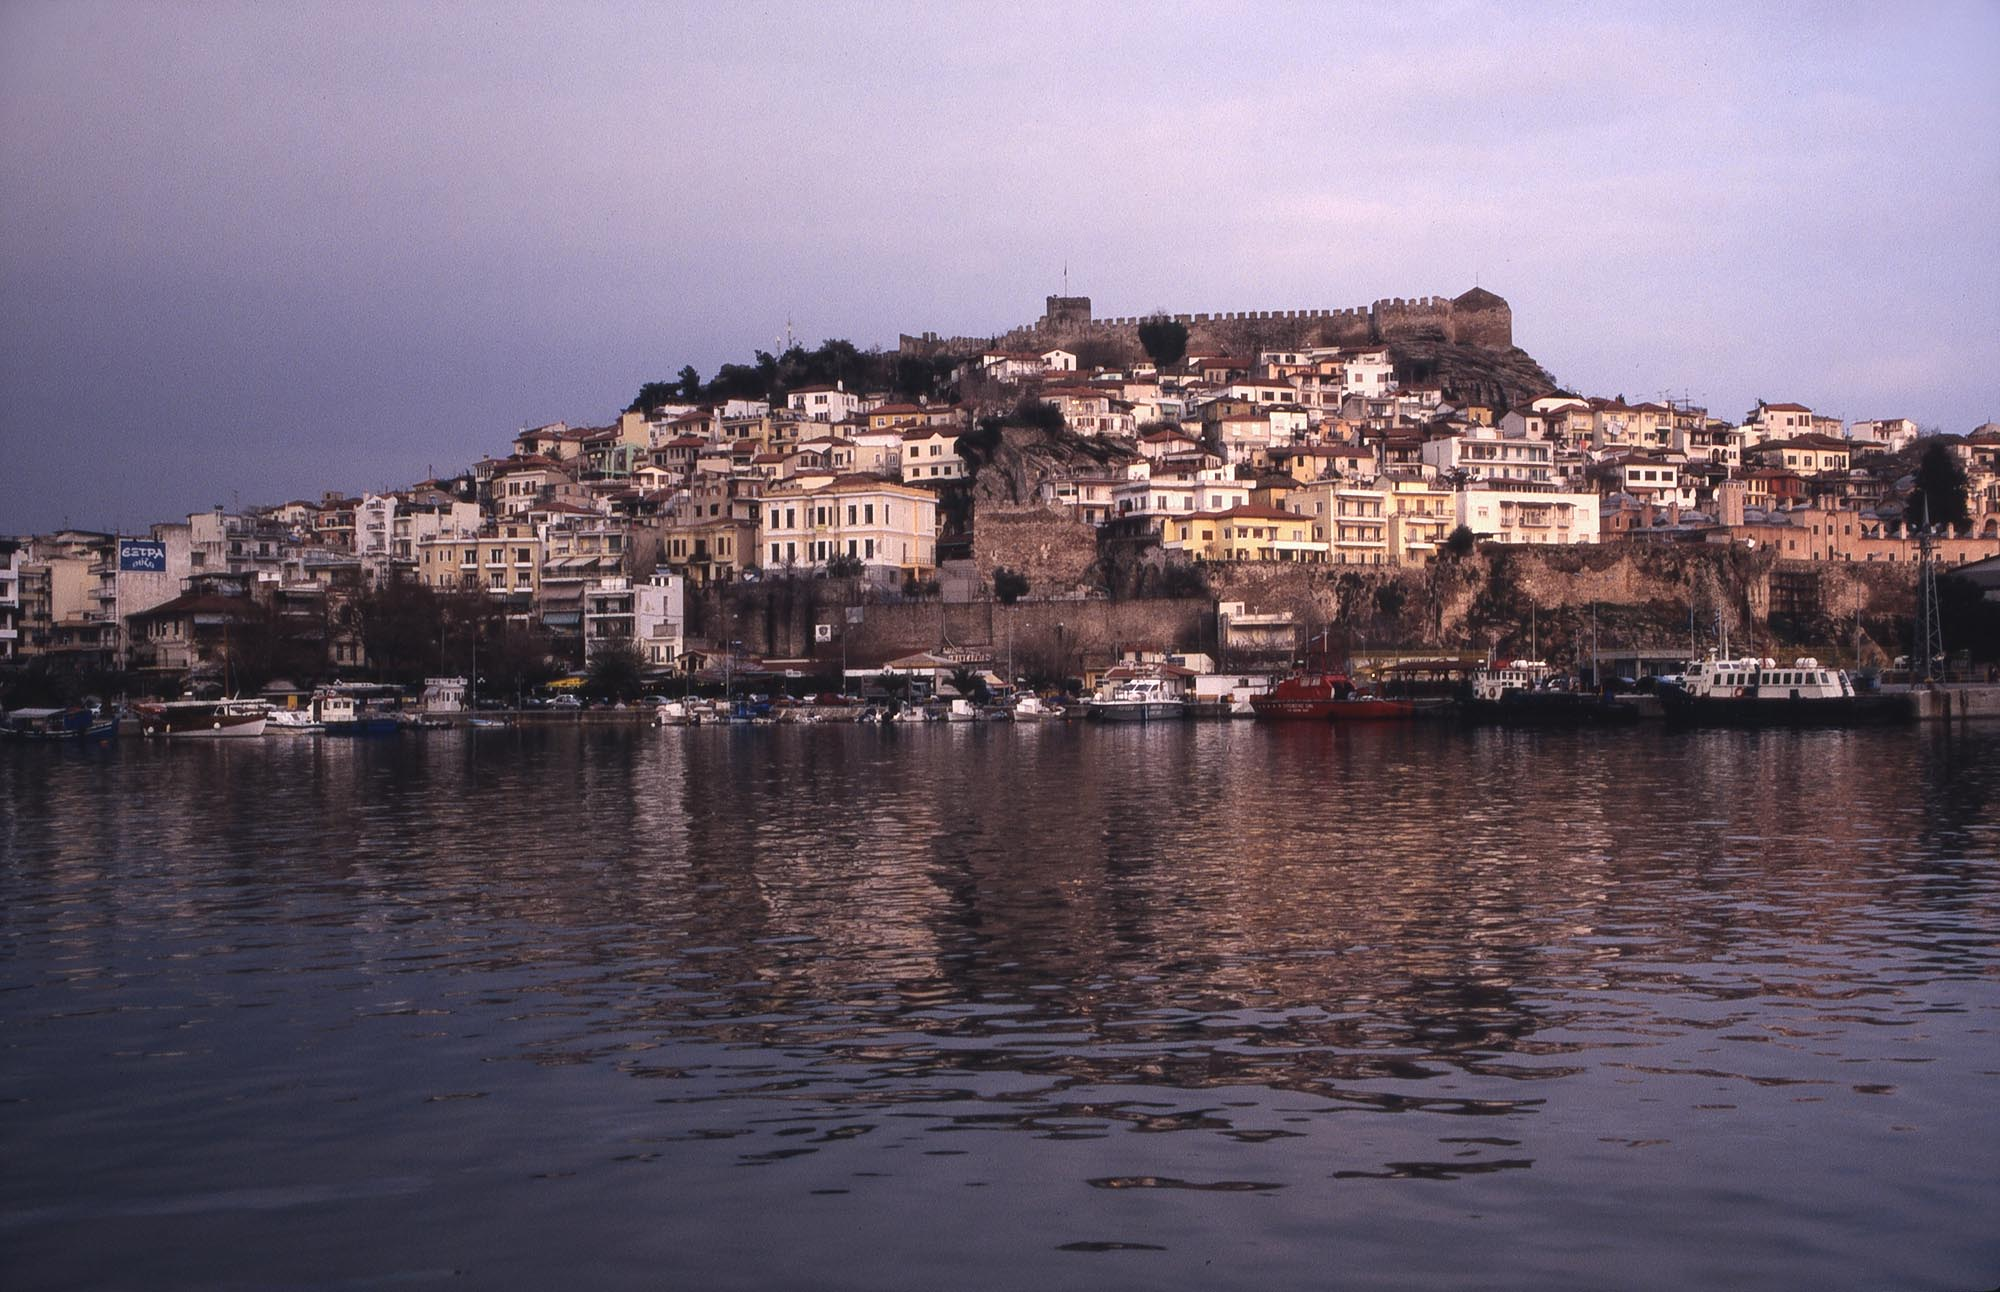 griechenland-kavala-halbinsel-small